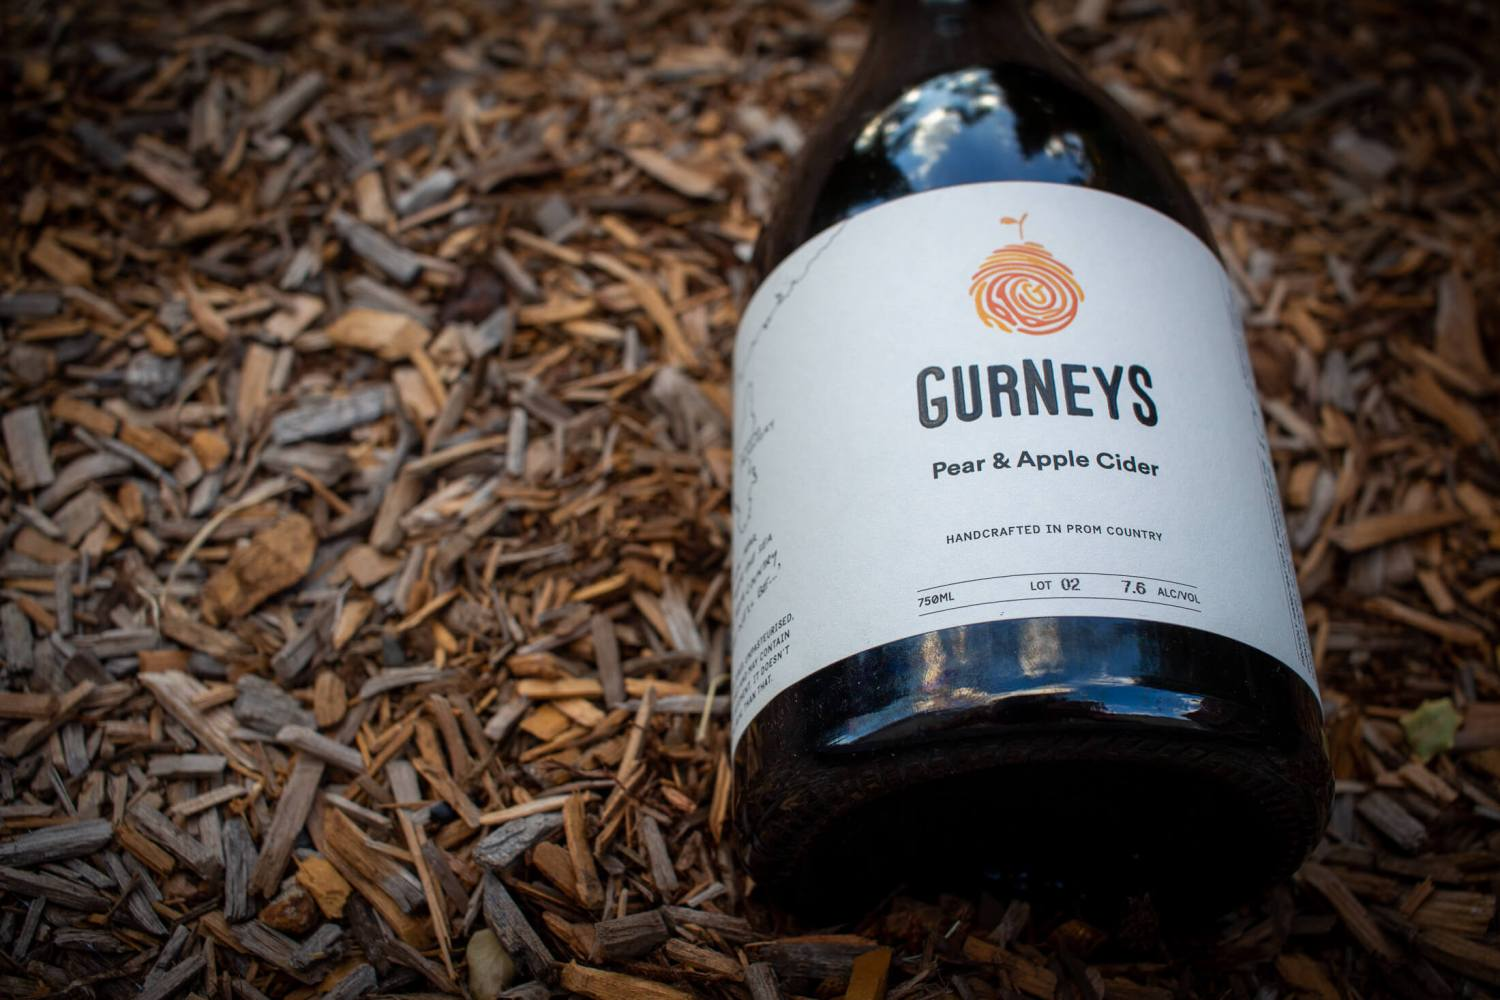 Gurneys Pear and Apple Cider review